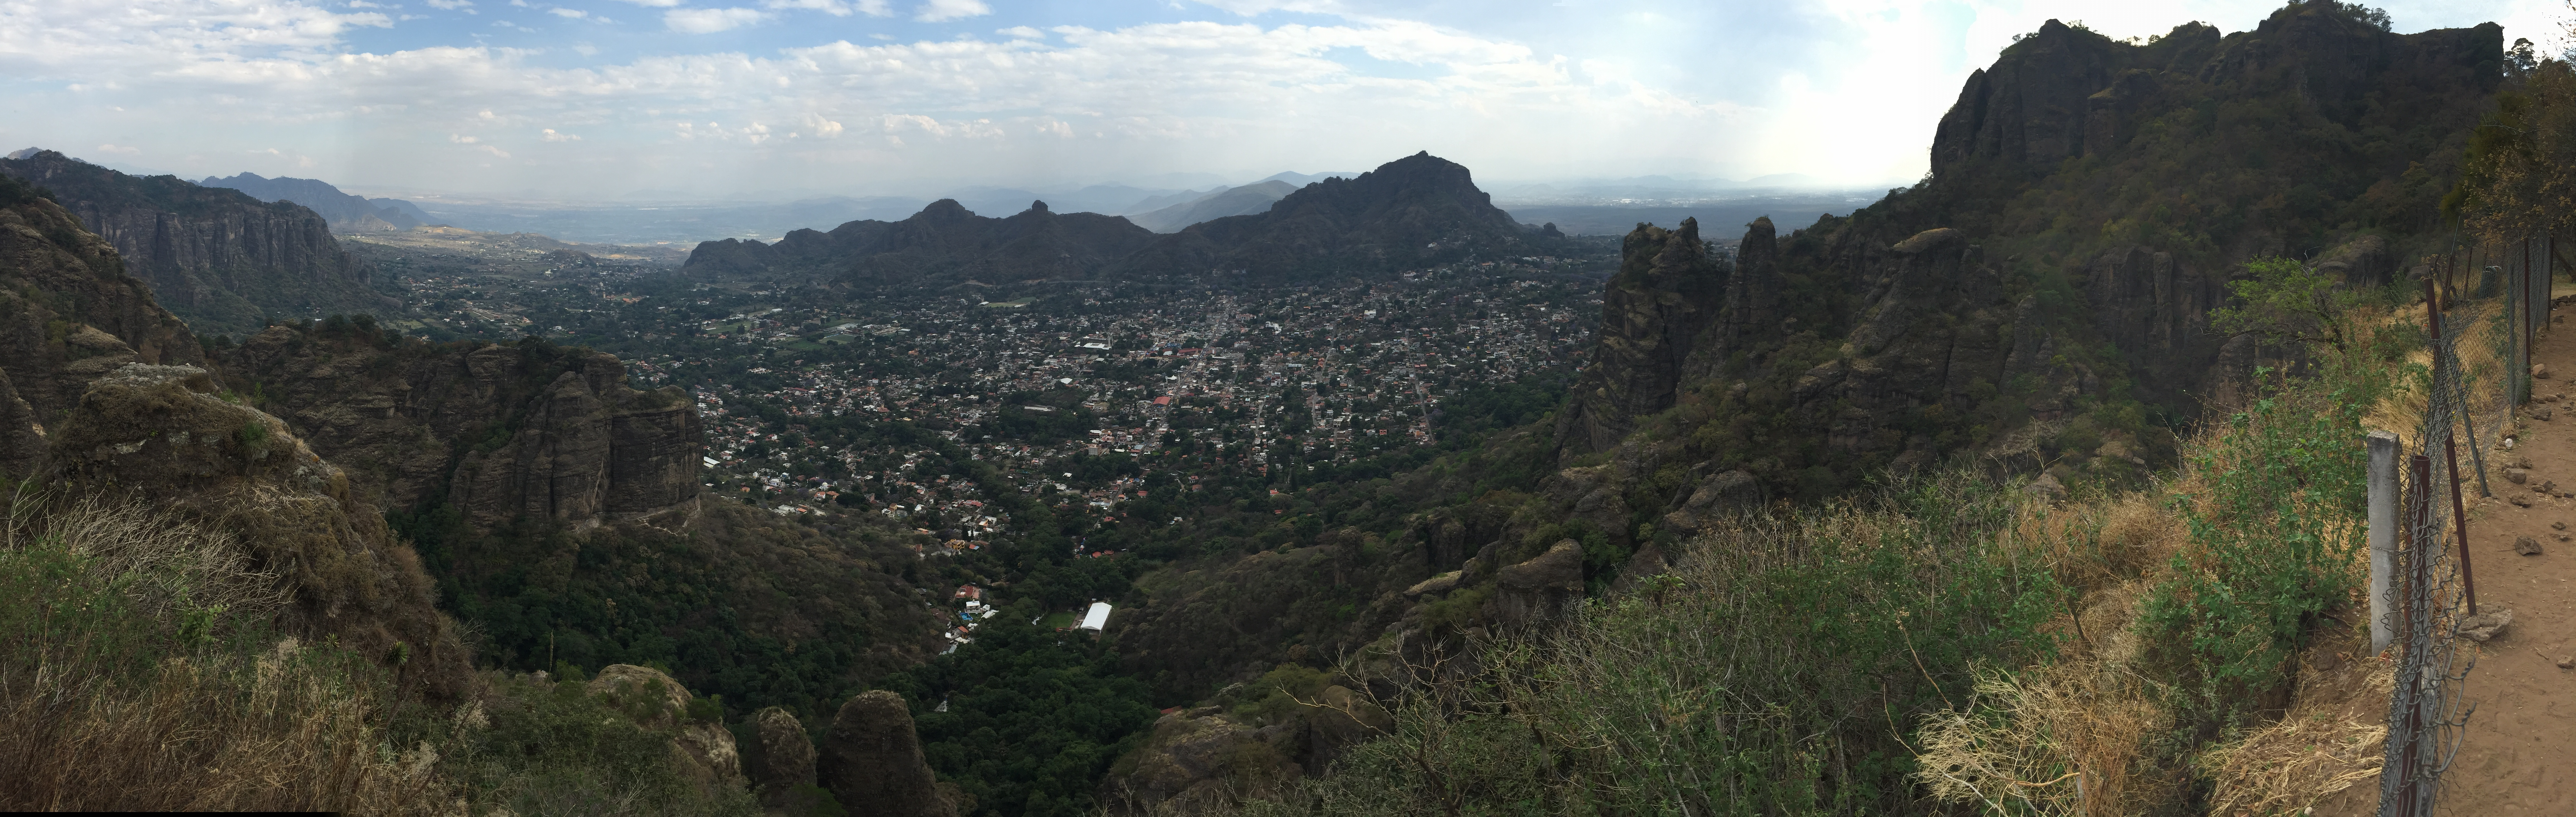 Panoramic view of Tepoztlan.